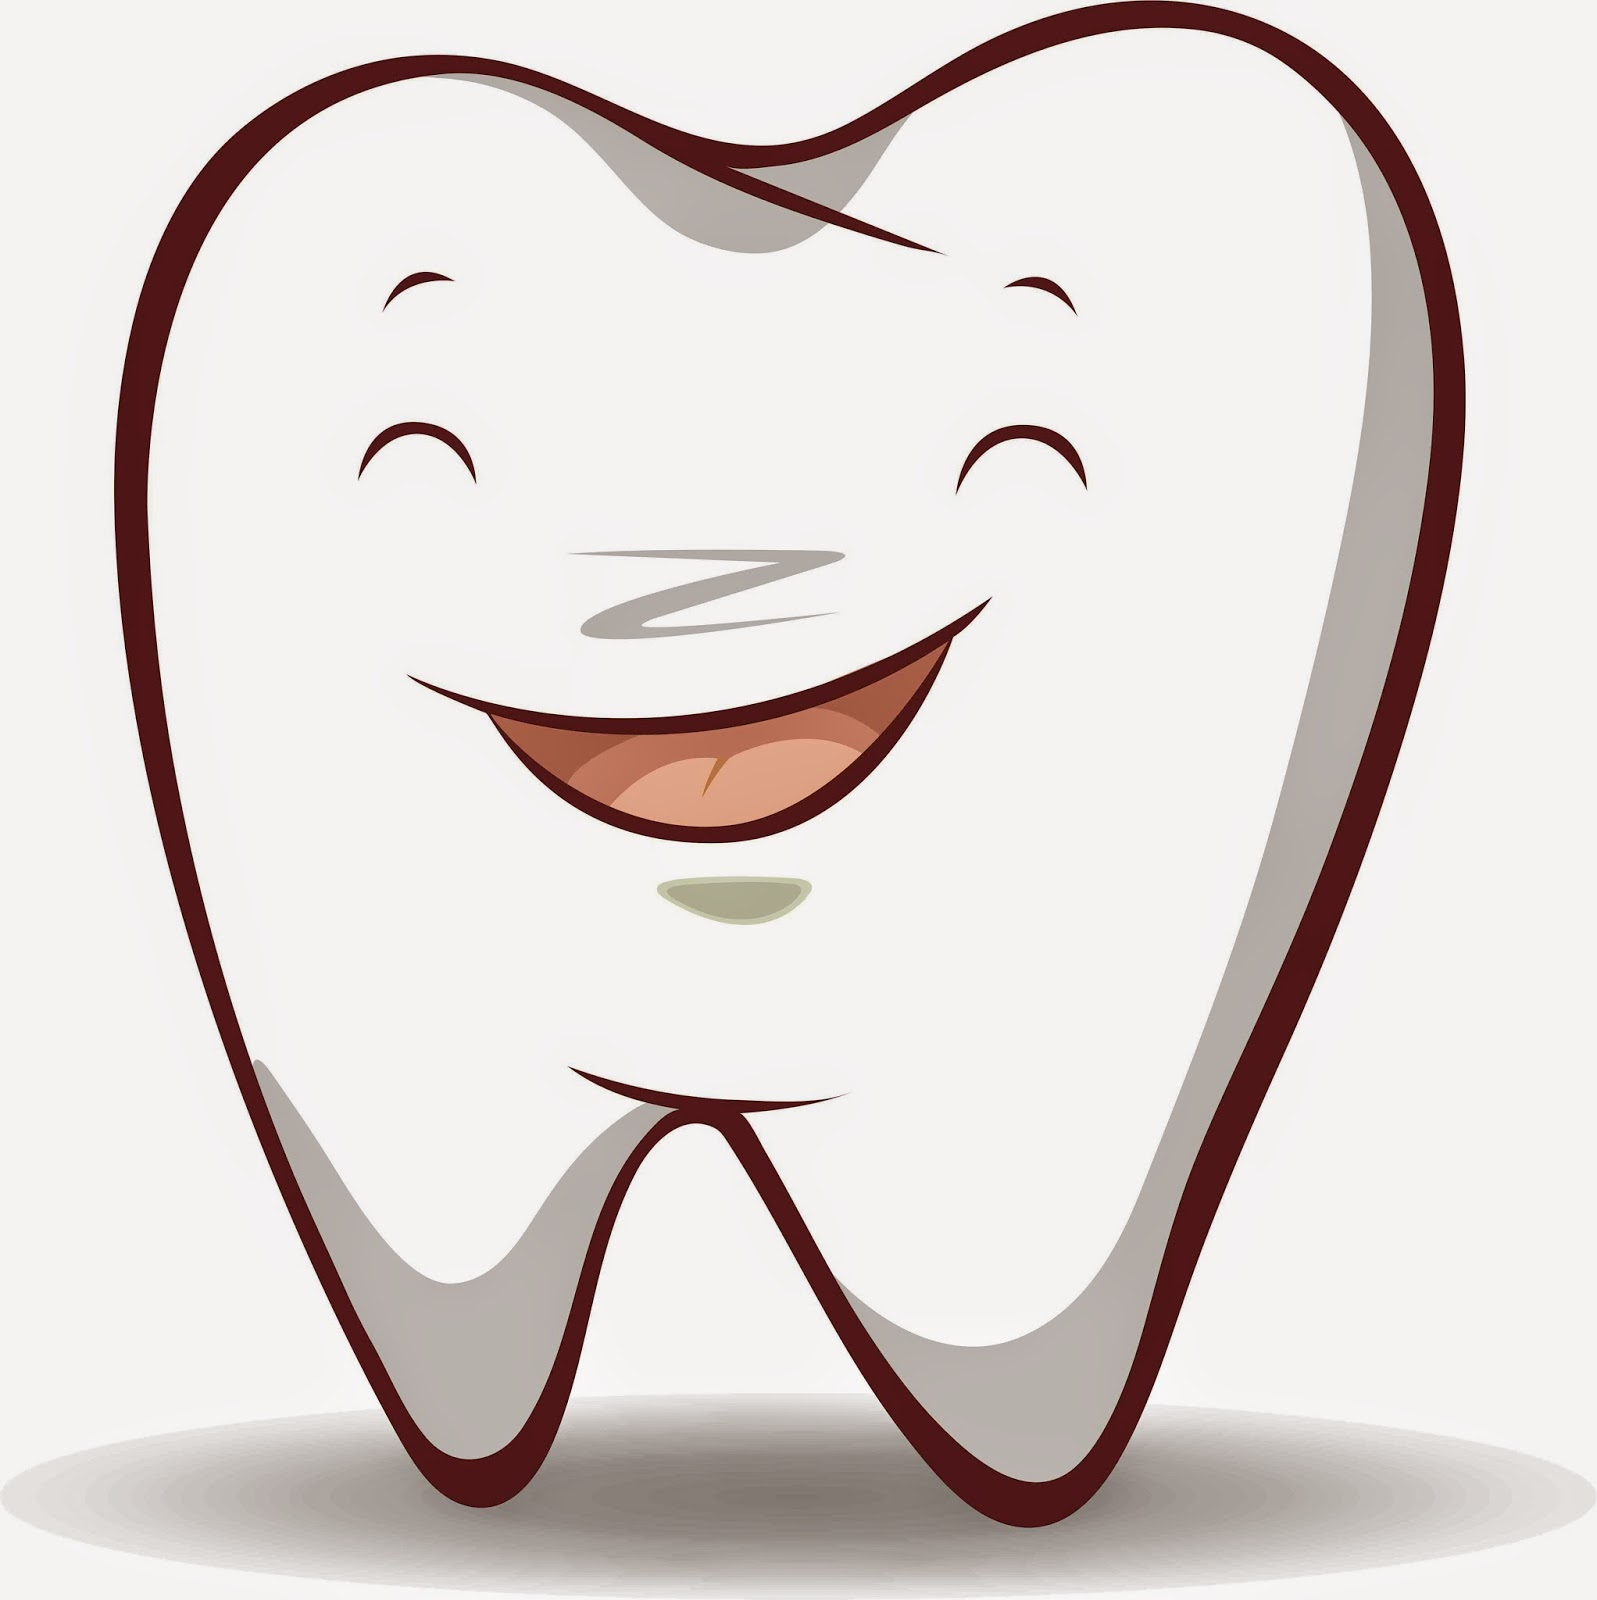 Clipart teetj banner freeuse stock Tooth clip art teeth clipart 3 - ClipartBarn banner freeuse stock